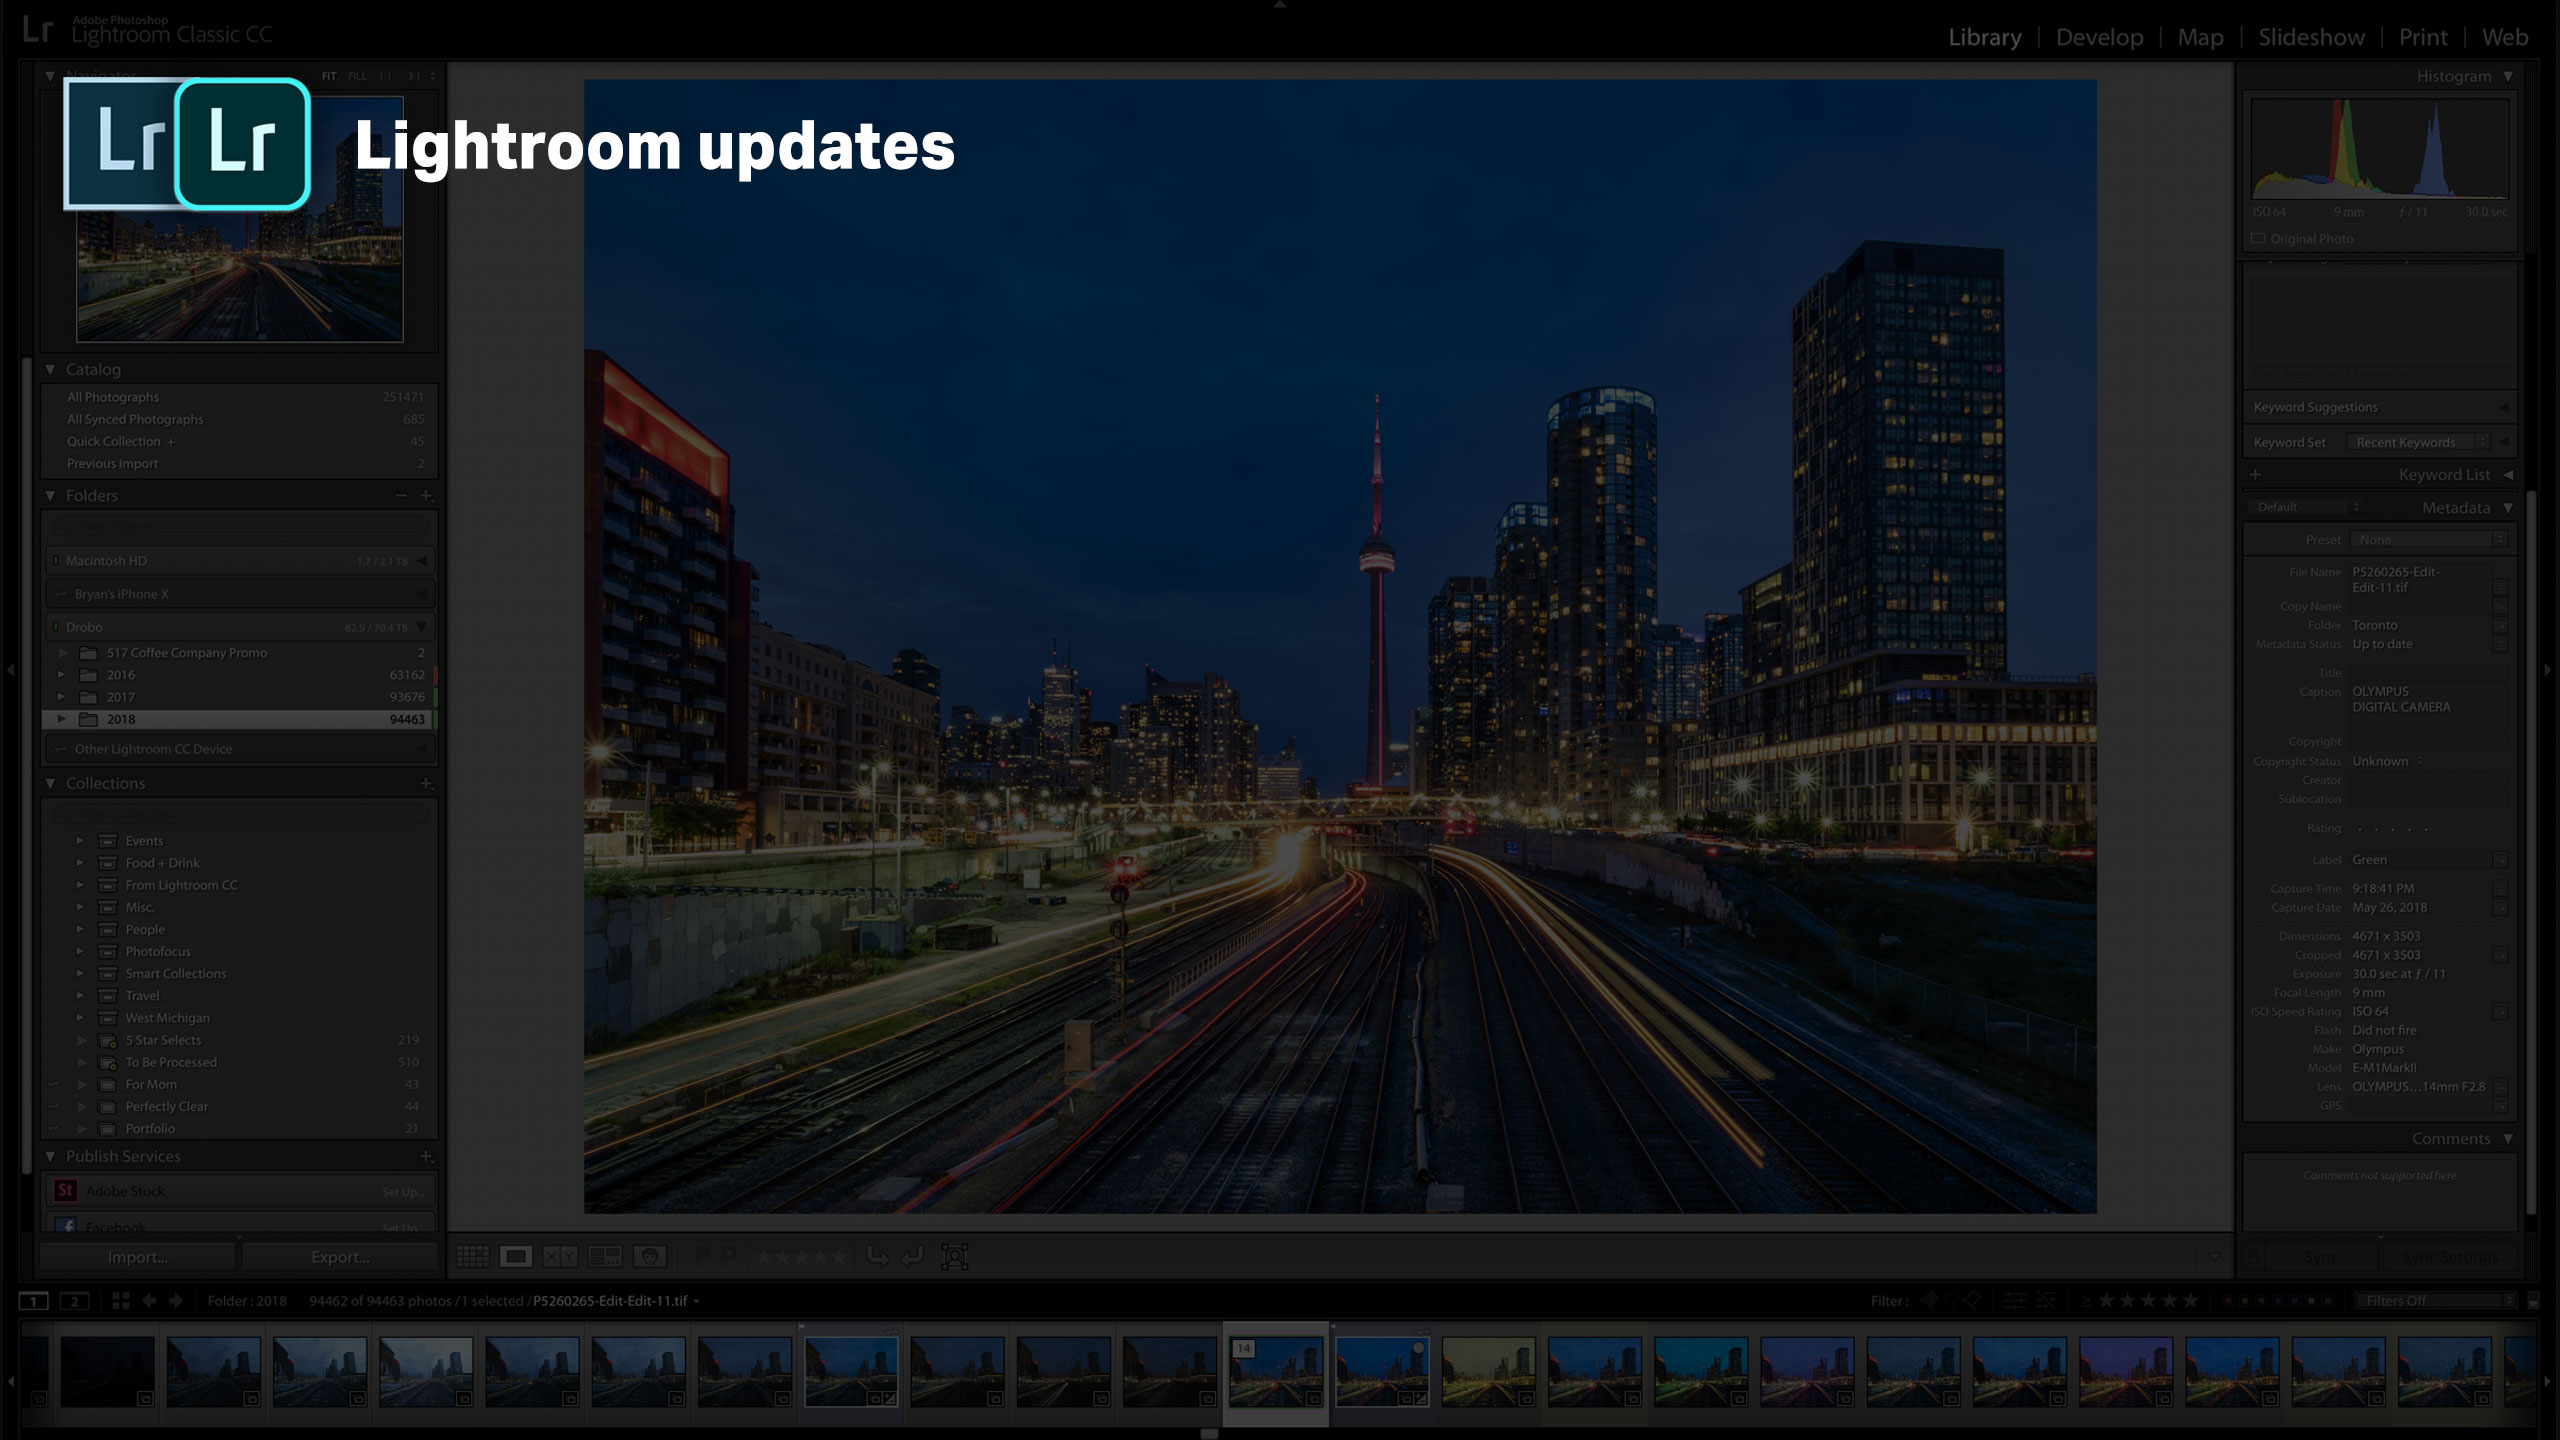 Lightroom, Lightroom Classic see productivity updates at Adobe MAX